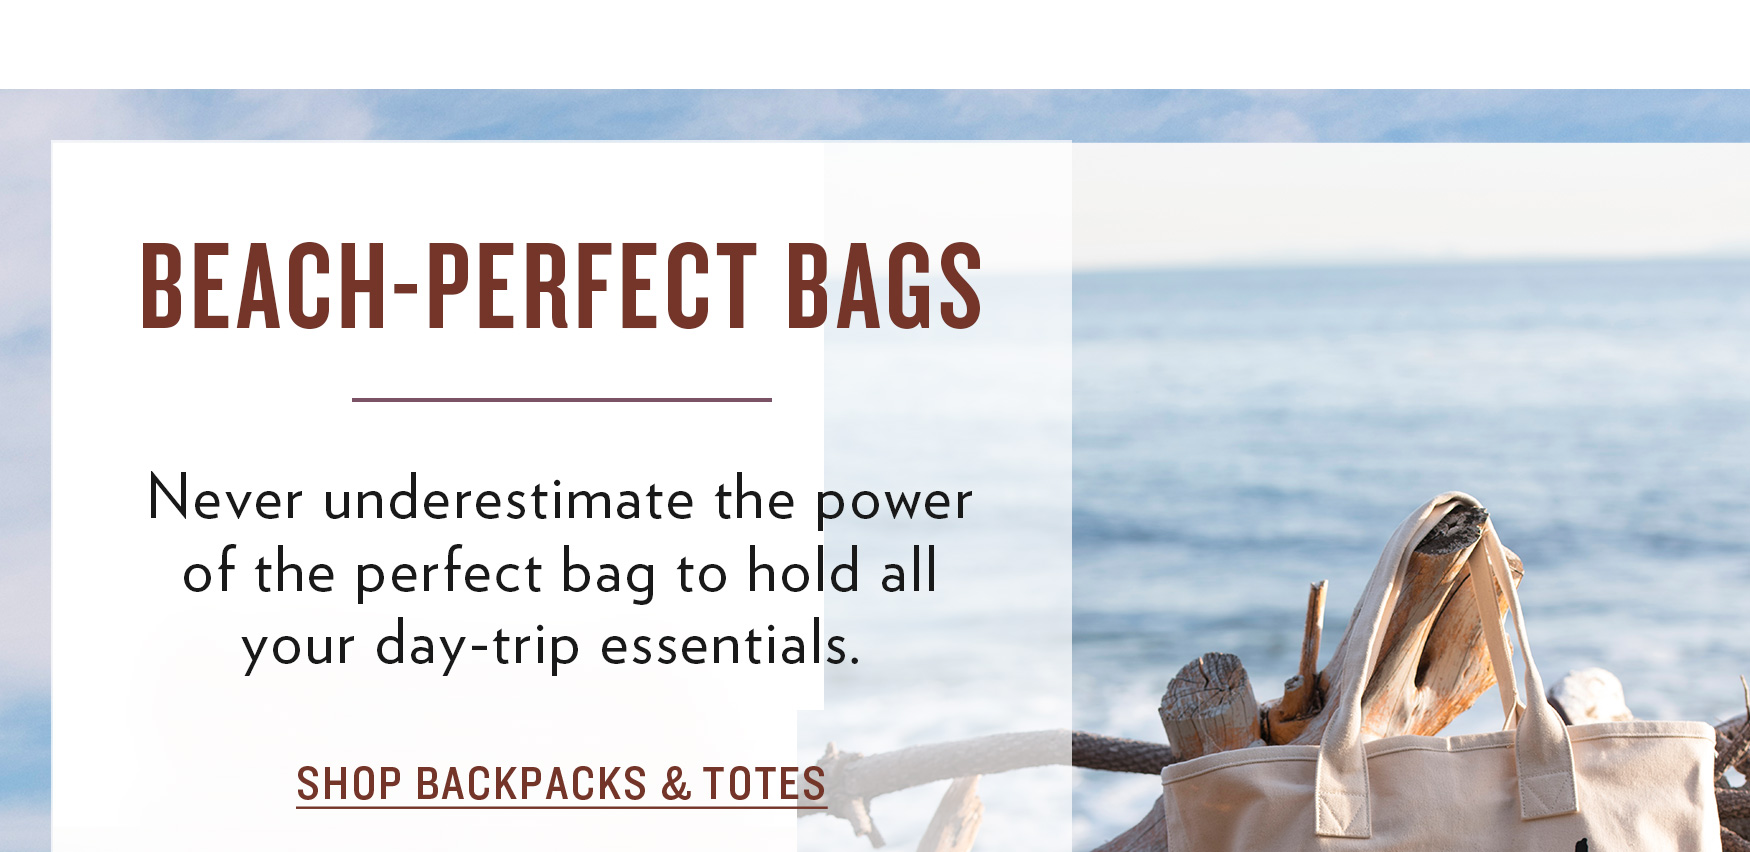 Shop Backpacks & Totes